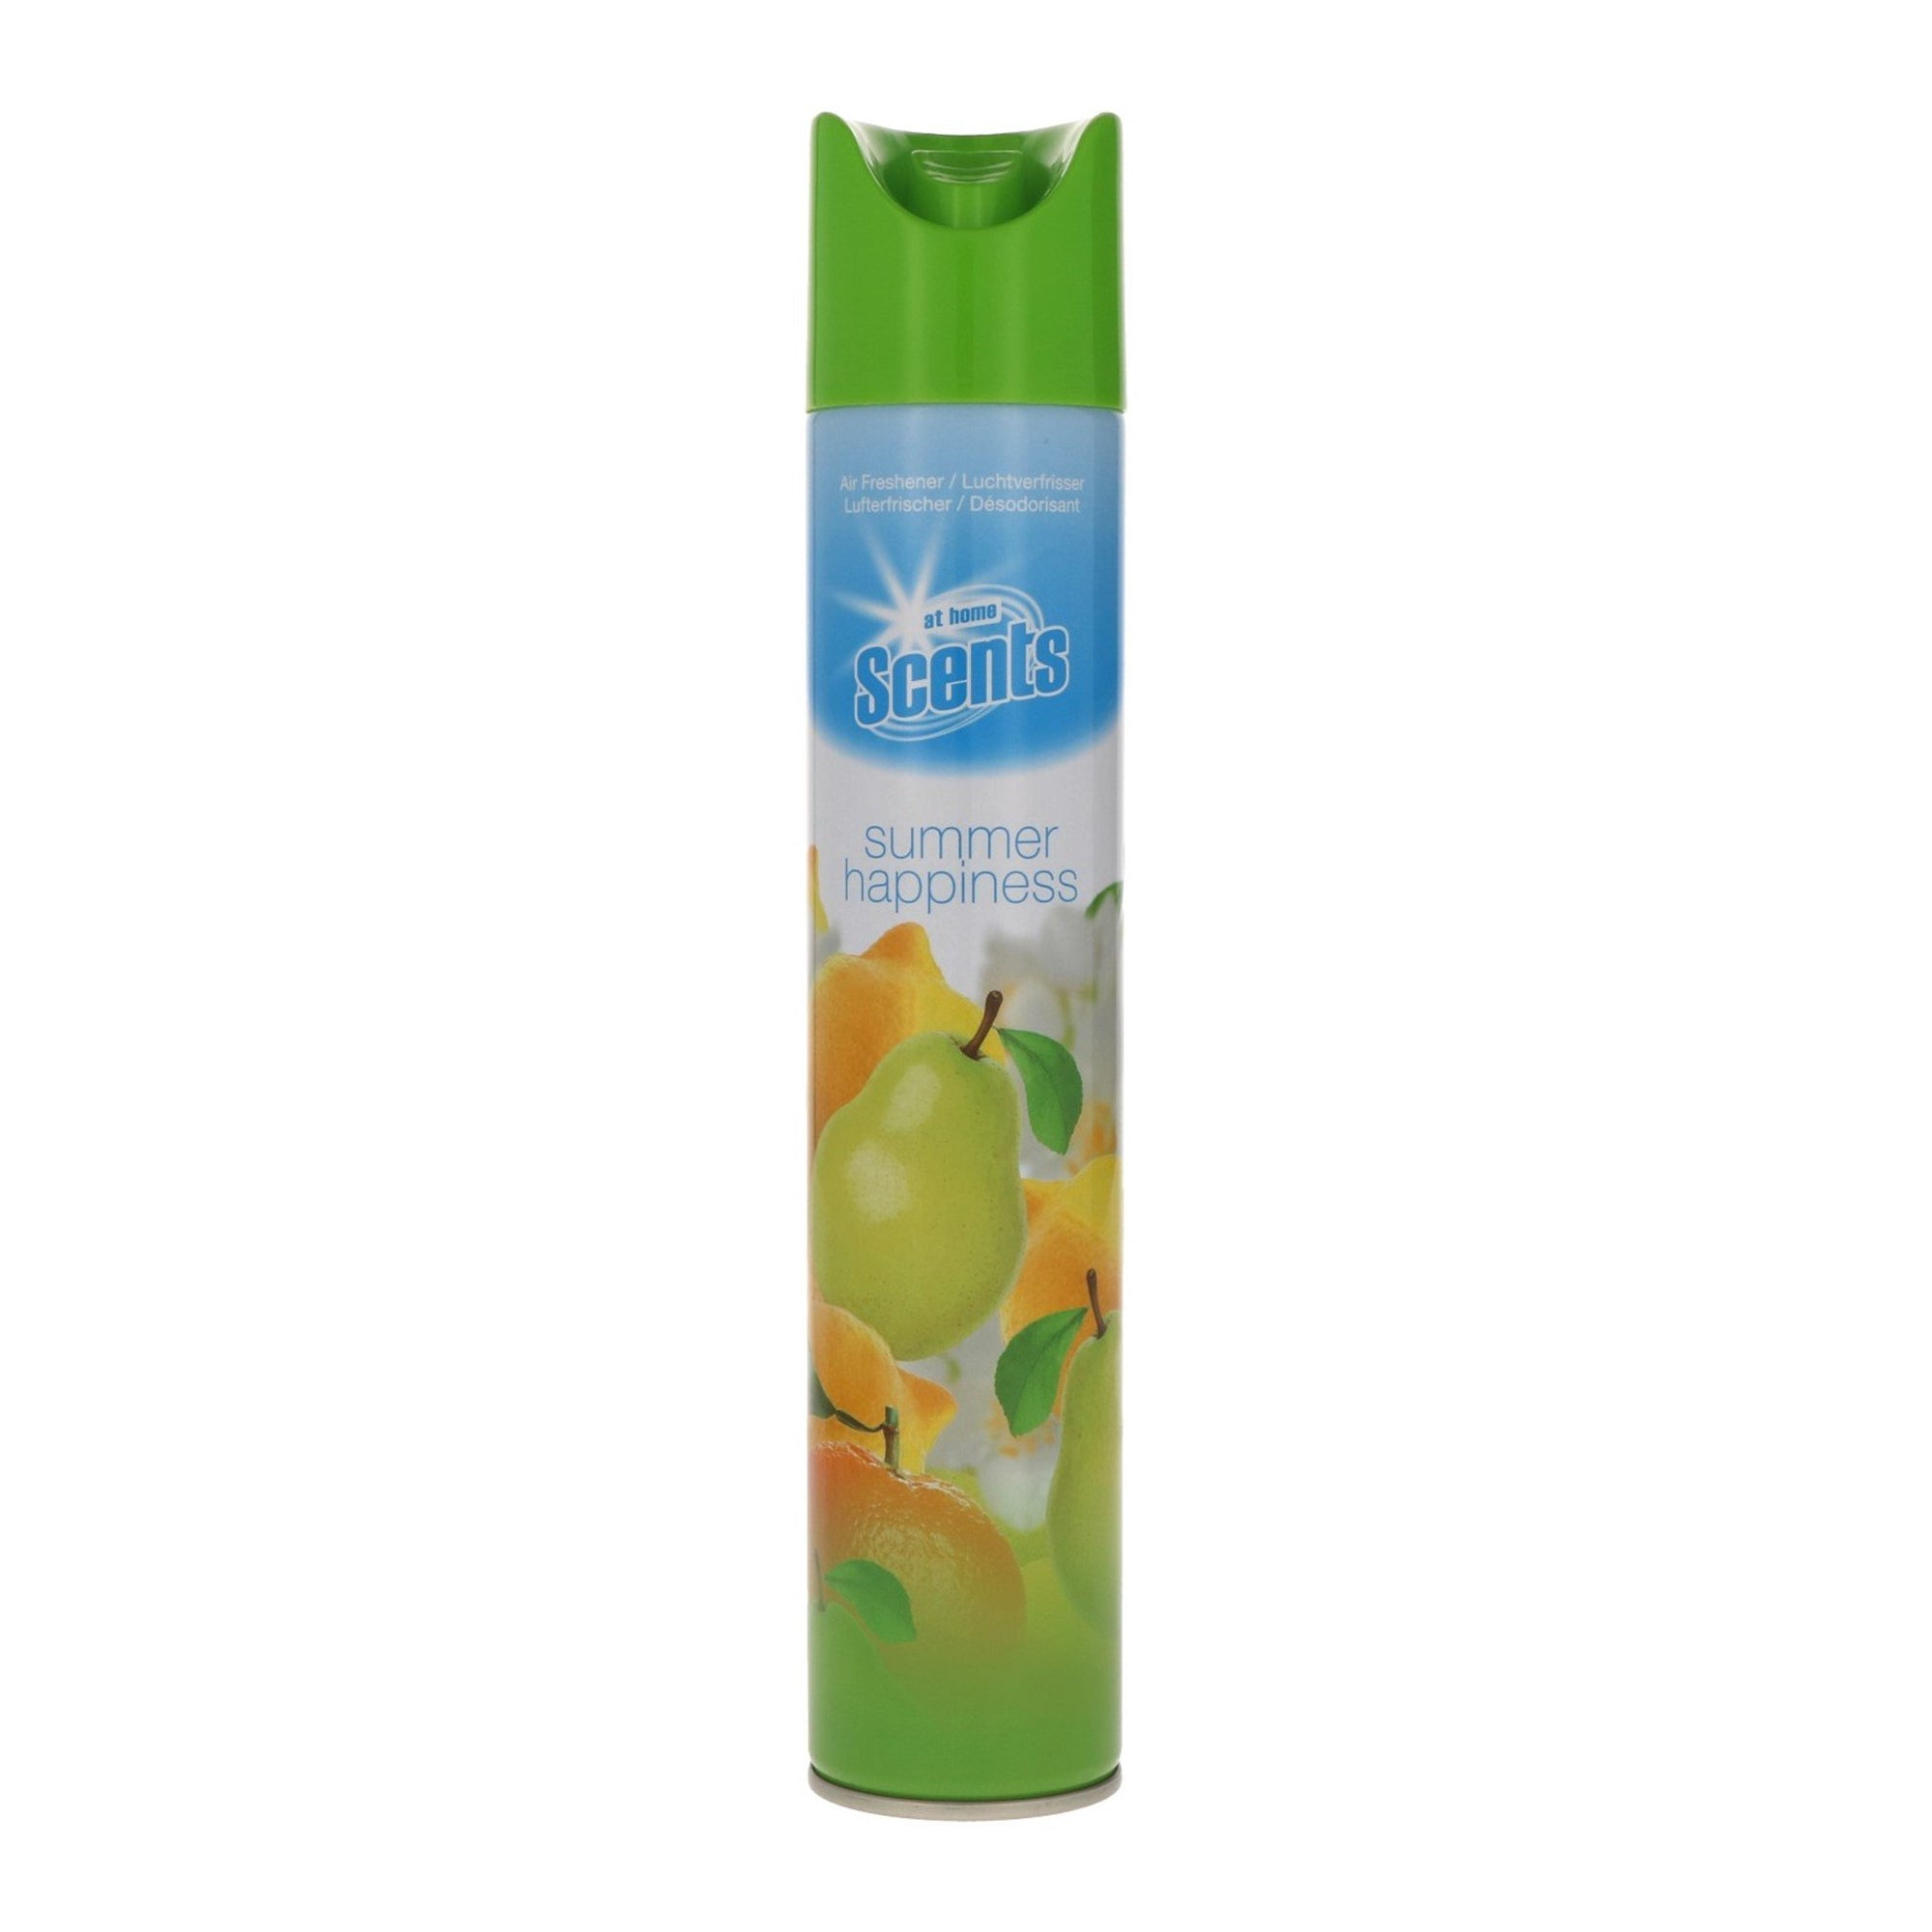 At Home Scents Air Freshener Summer Happiness 400ml